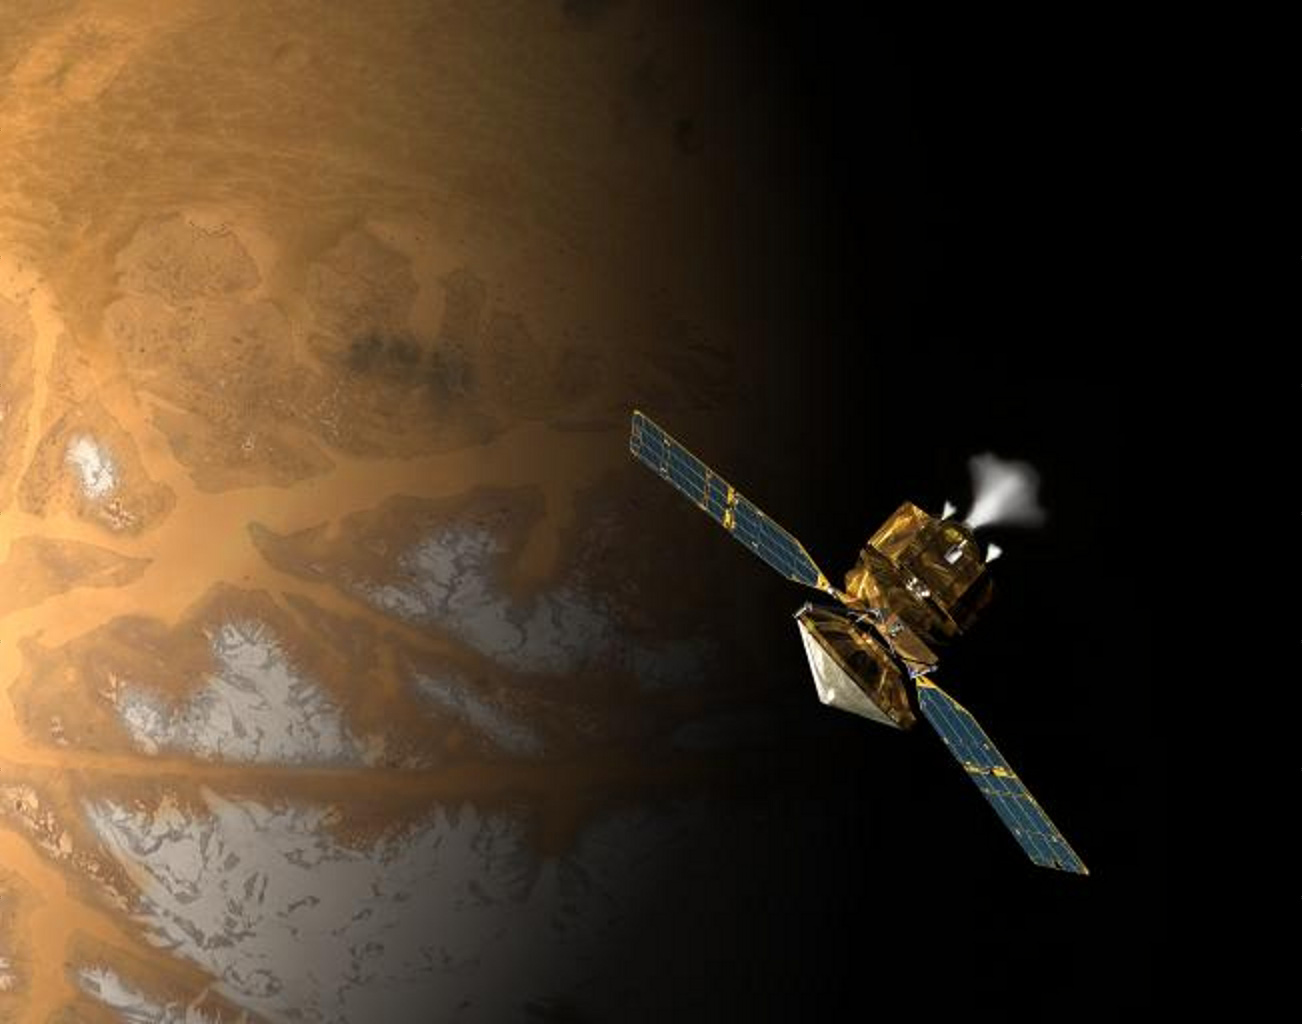 This is an artist's concept of NASA's Mars Reconnaissance Orbiter during the critical process of Mars orbit insertion.